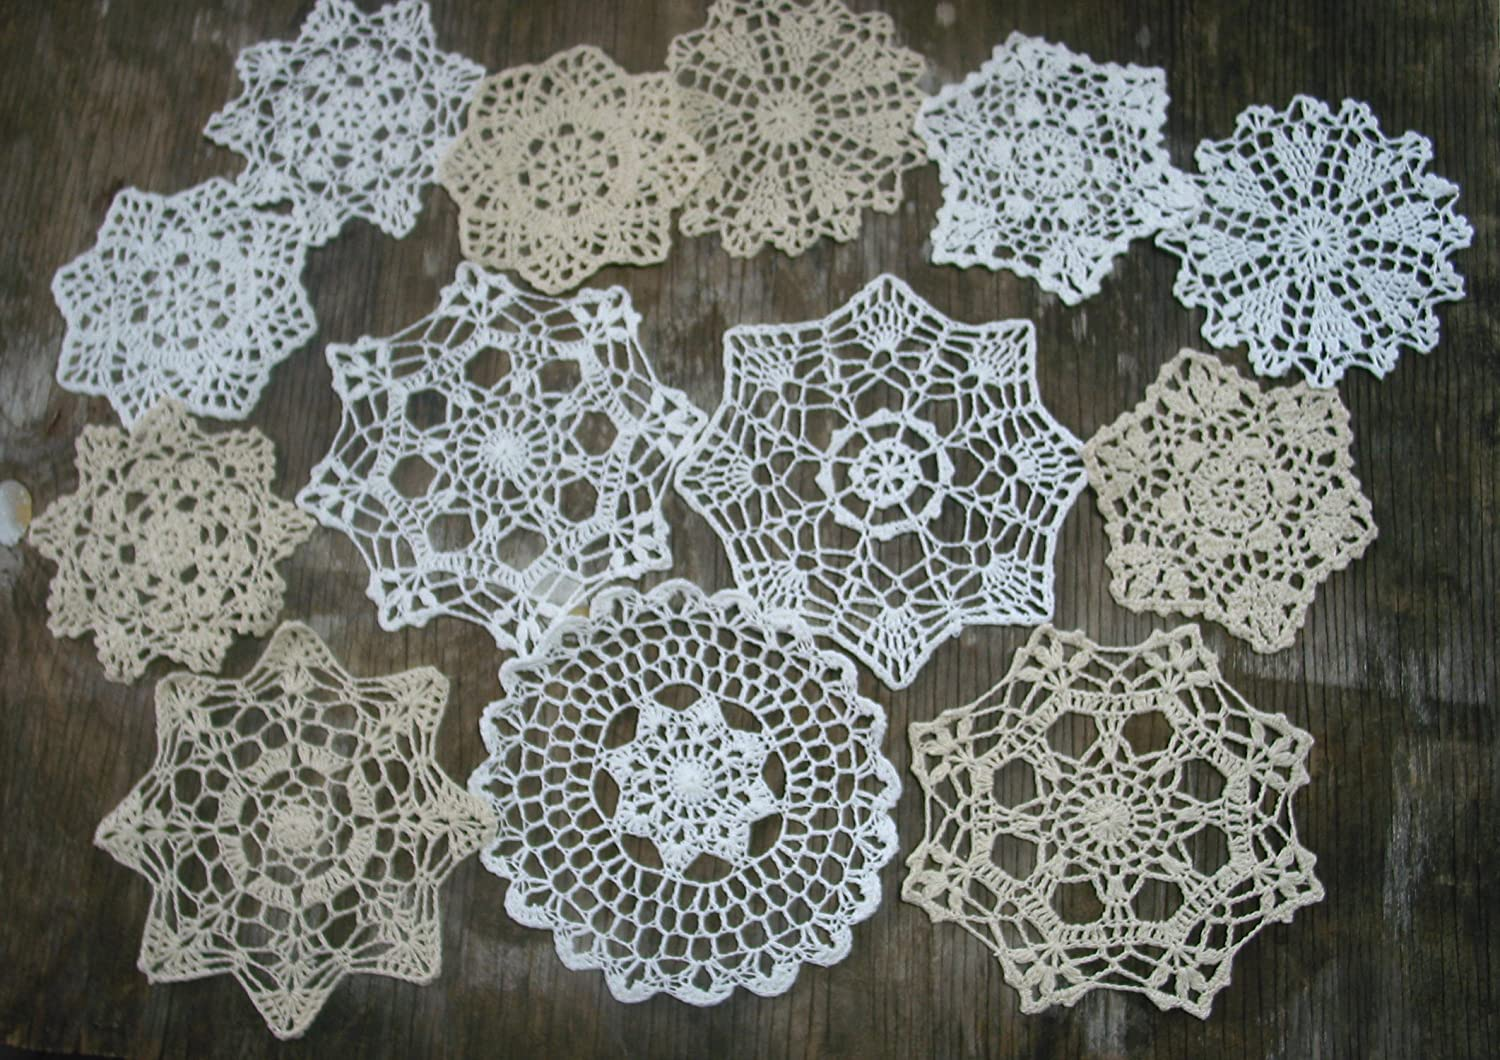 Amazon Set Of 14 Hand Crochet Doilies 5 7 14 White Natural